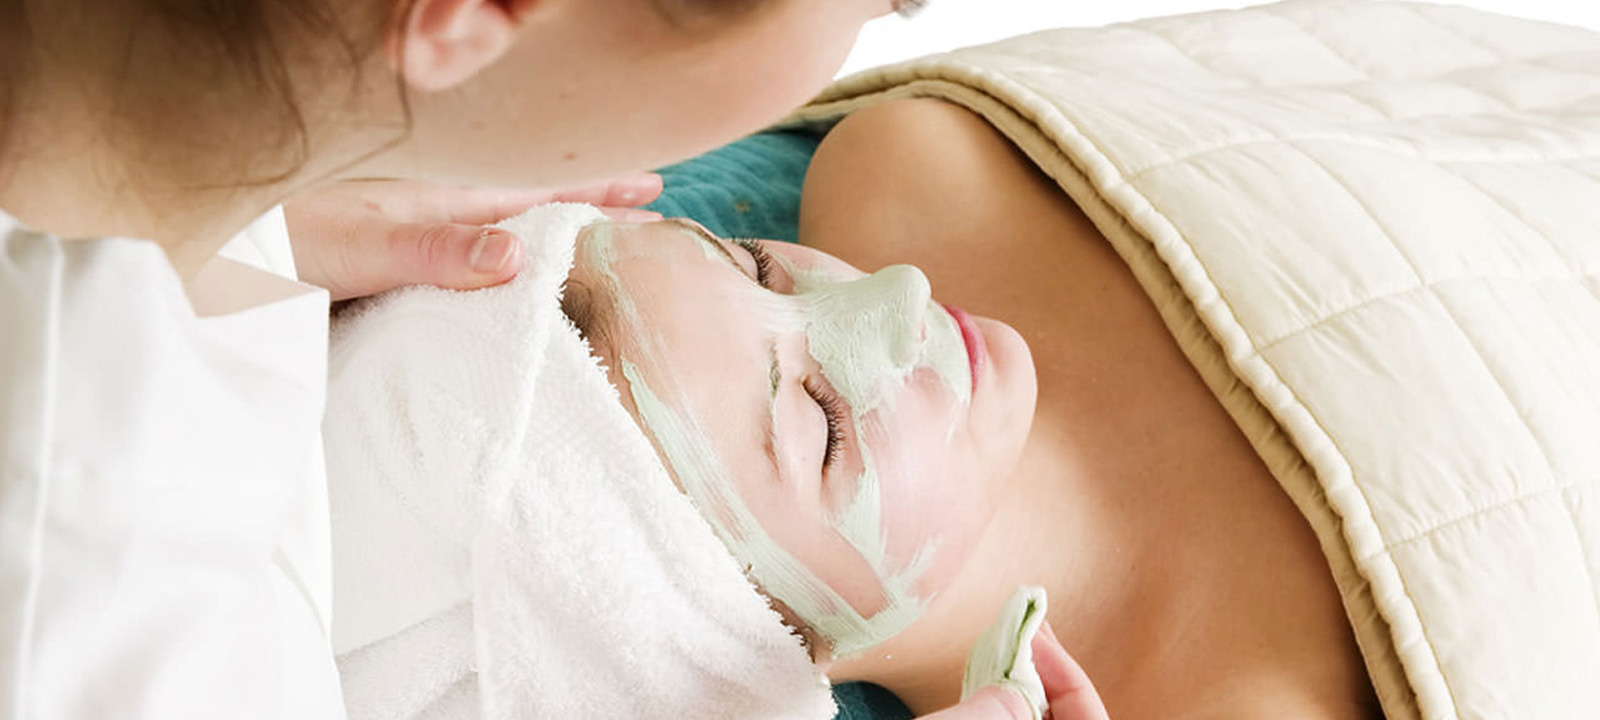 Our facials do more than just treat the surface